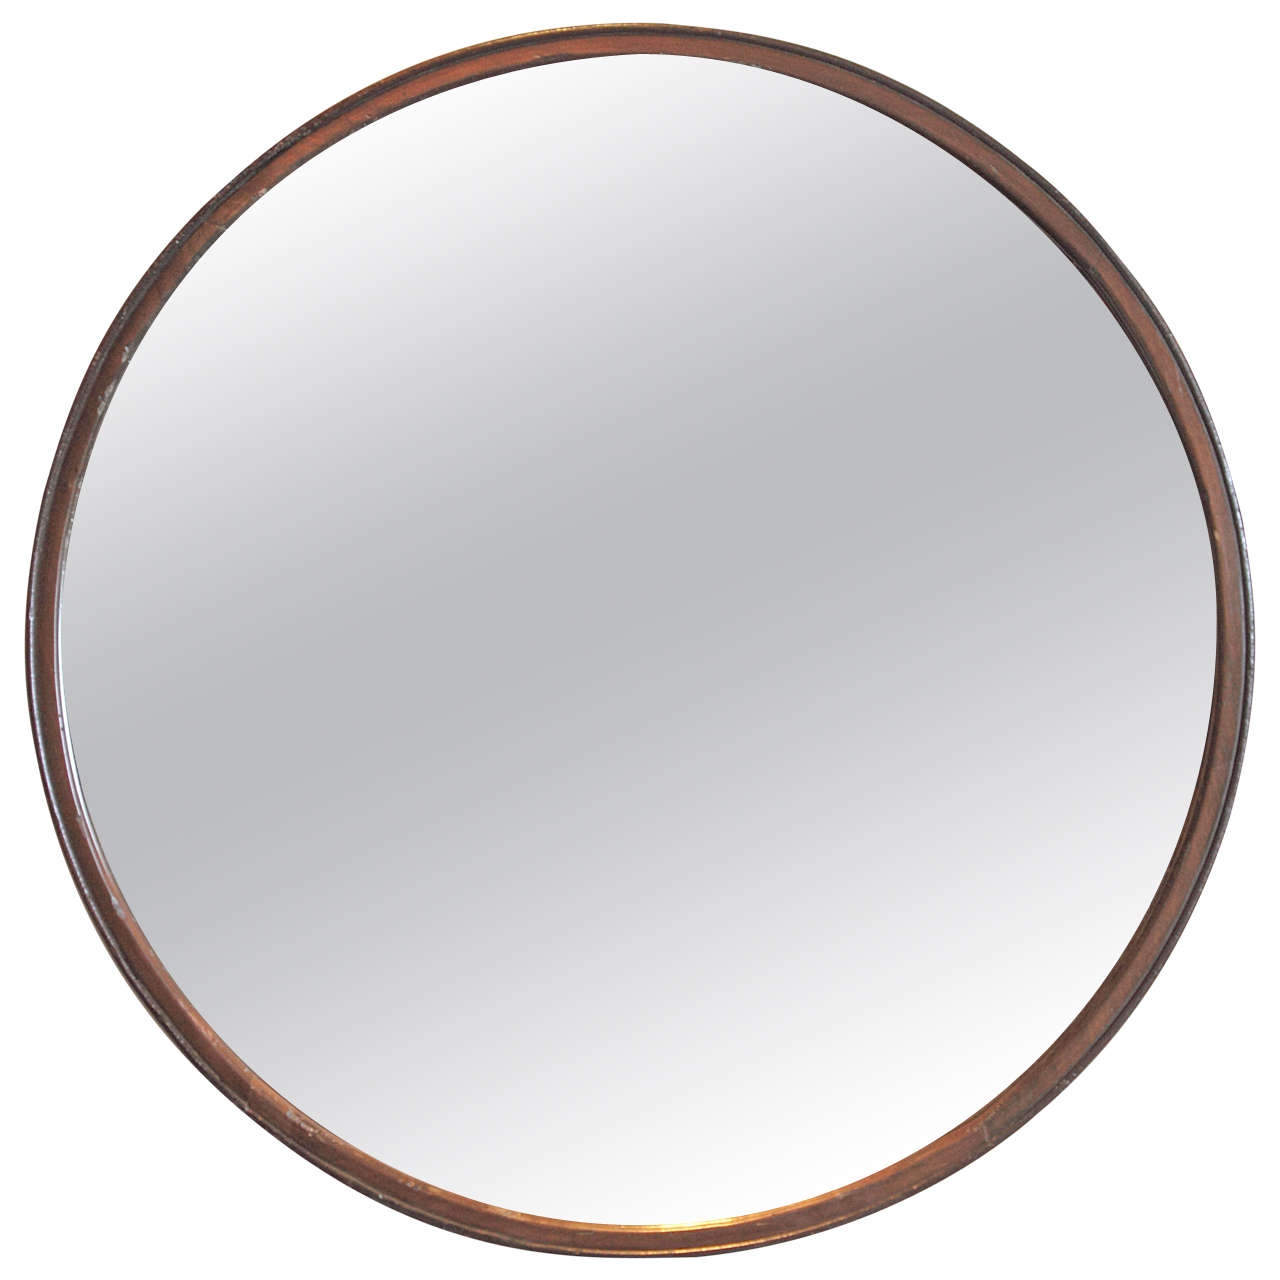 Industrial Wheel Mirror Frame | Furniture | Lighted Wall Within Industrial Modern & Contemporary Wall Mirrors (View 14 of 30)